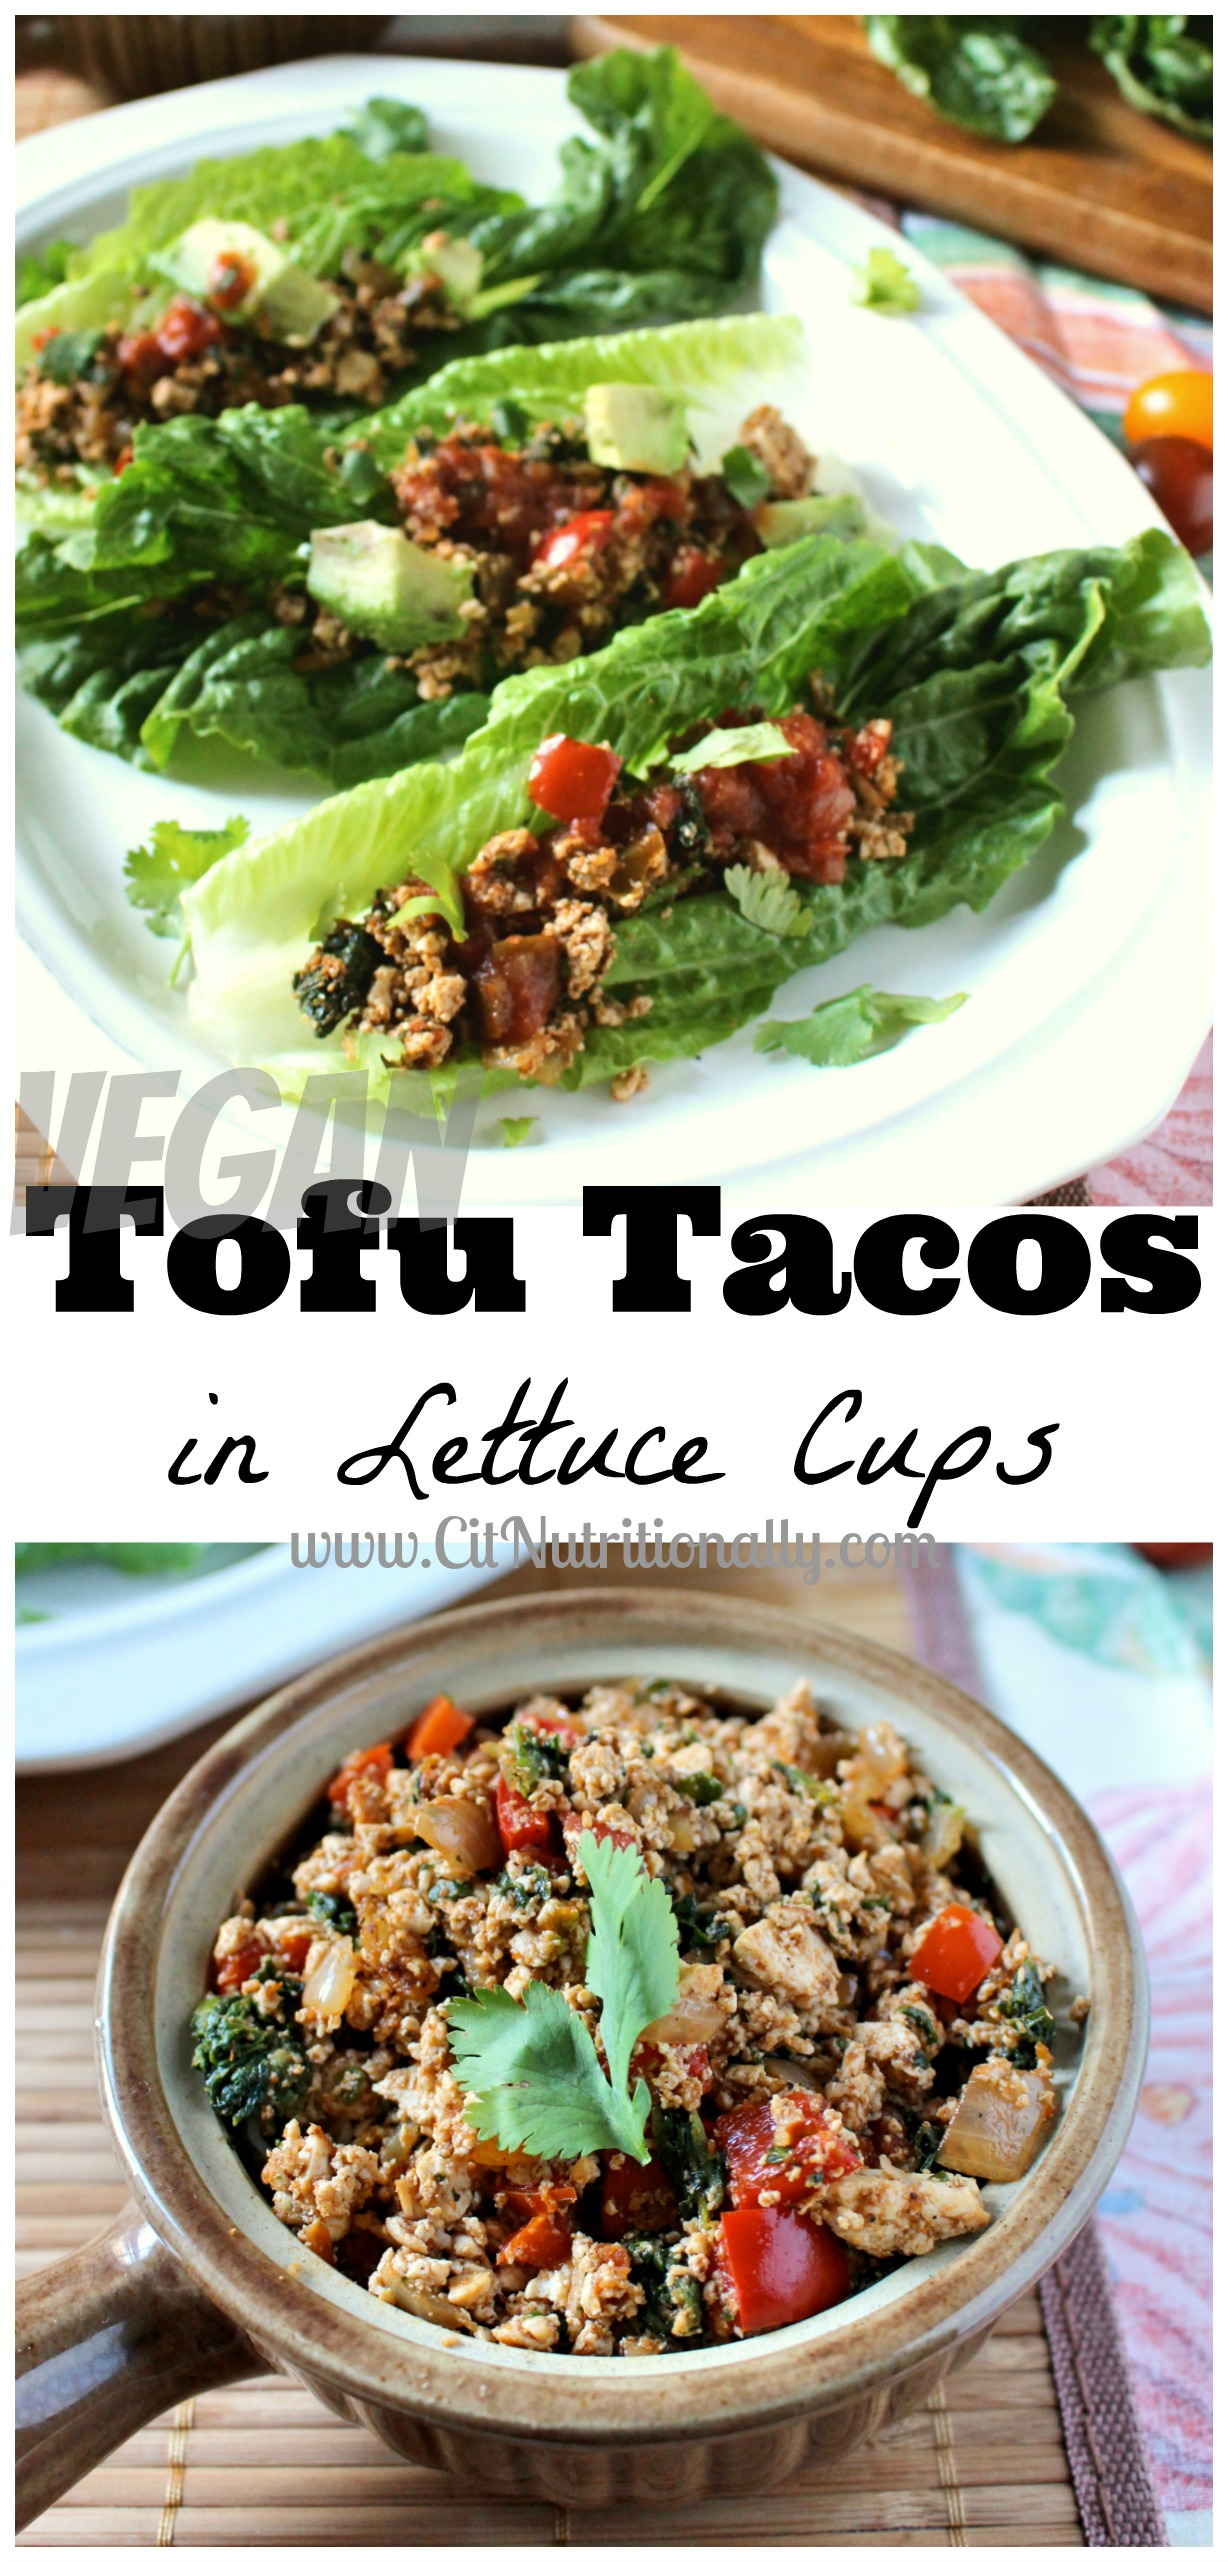 Tofu Tacos in Lettuce Cups | C it Nutritionally